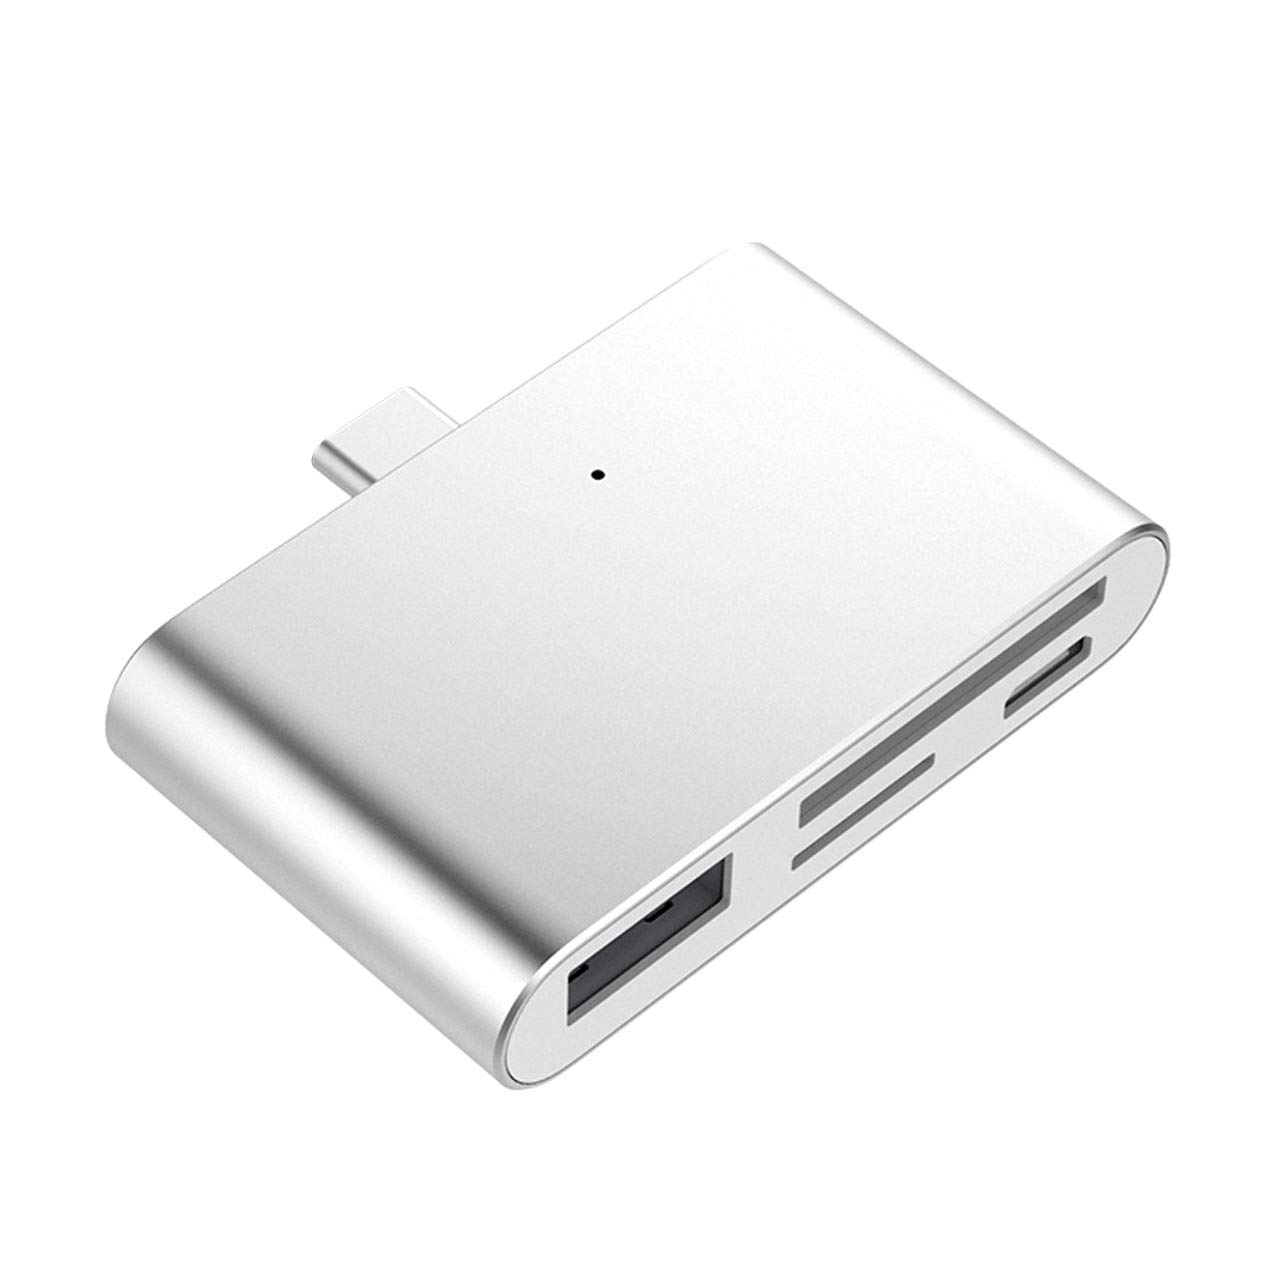 USB C Hub4-in-1USB Adapter Docking Station with Type-C SD/TF Card Reader USB 2.0 Ports for 016/2017 MacBook Pro Google Chromebook Phone Switch and More USB-C Devices